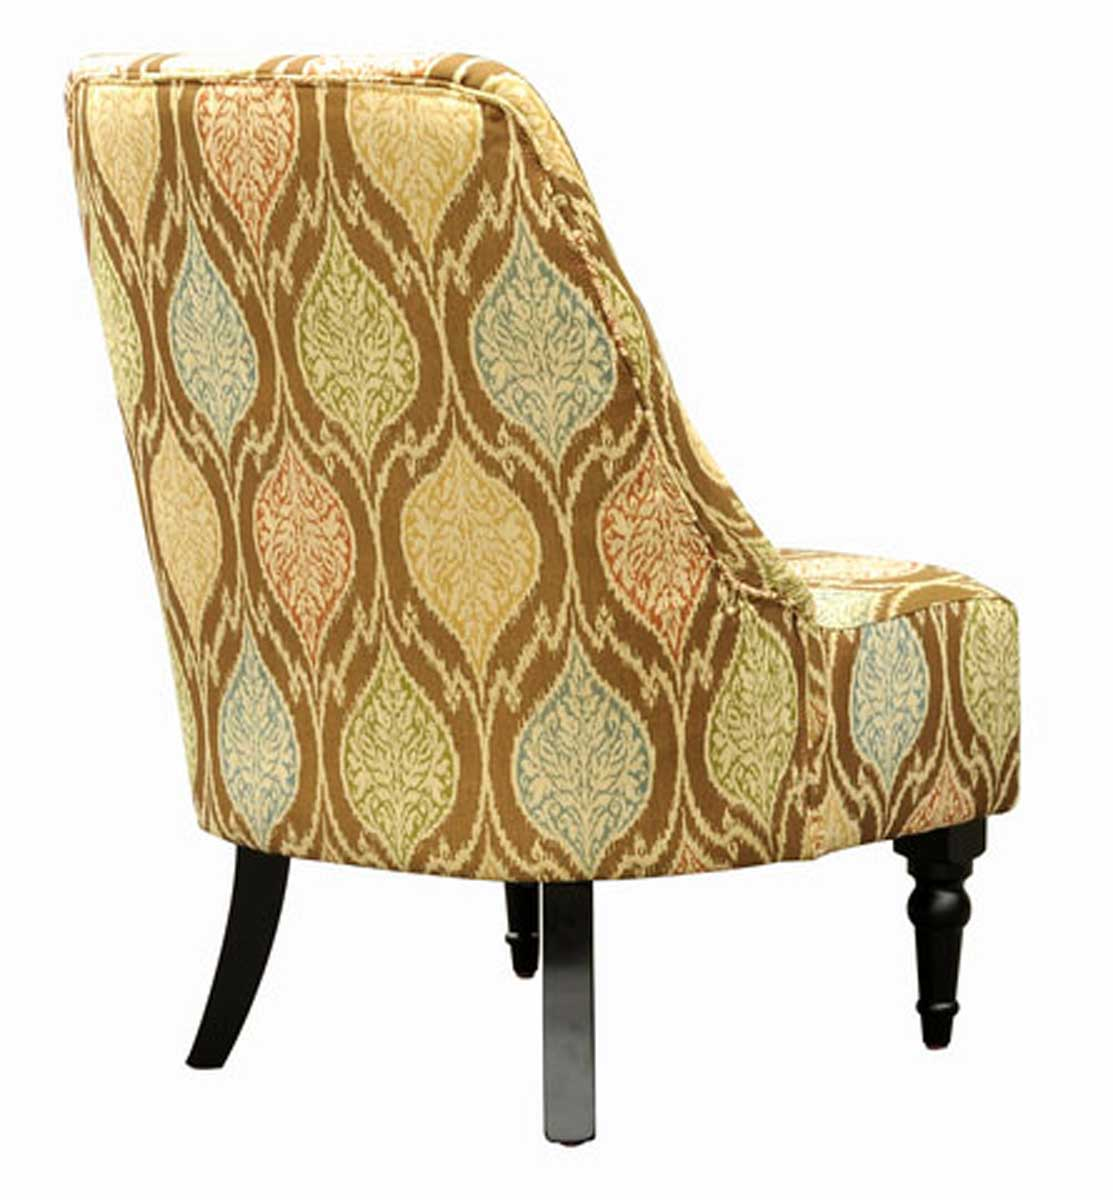 Armen Living Amelia Club Chair - Brown